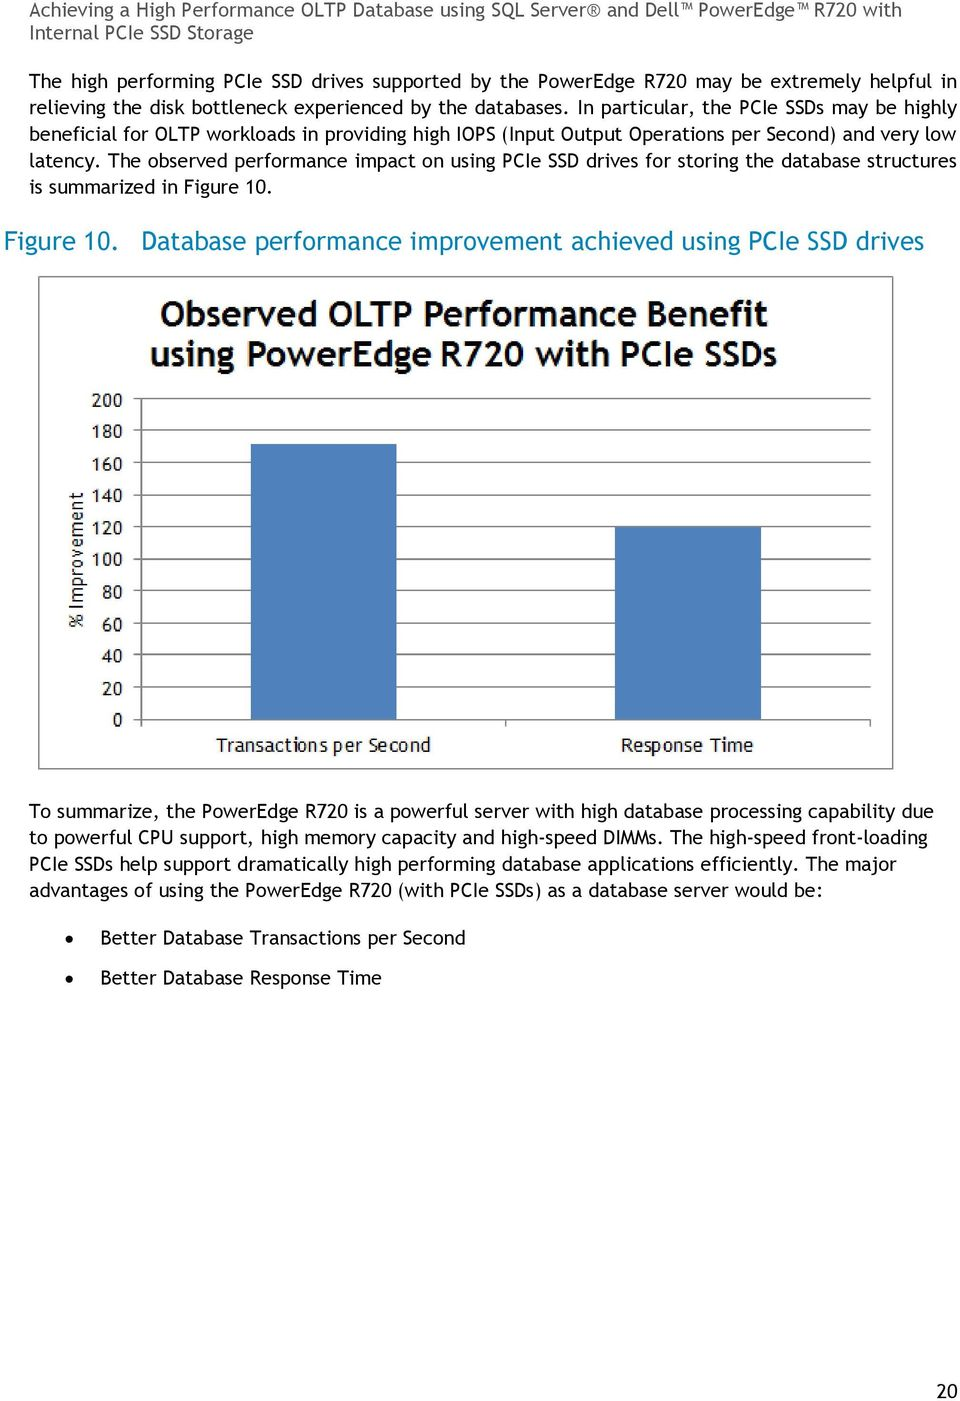 The observed performance impact on using PCIe SSD drives for storing the database structures is summarized in Figure 10.